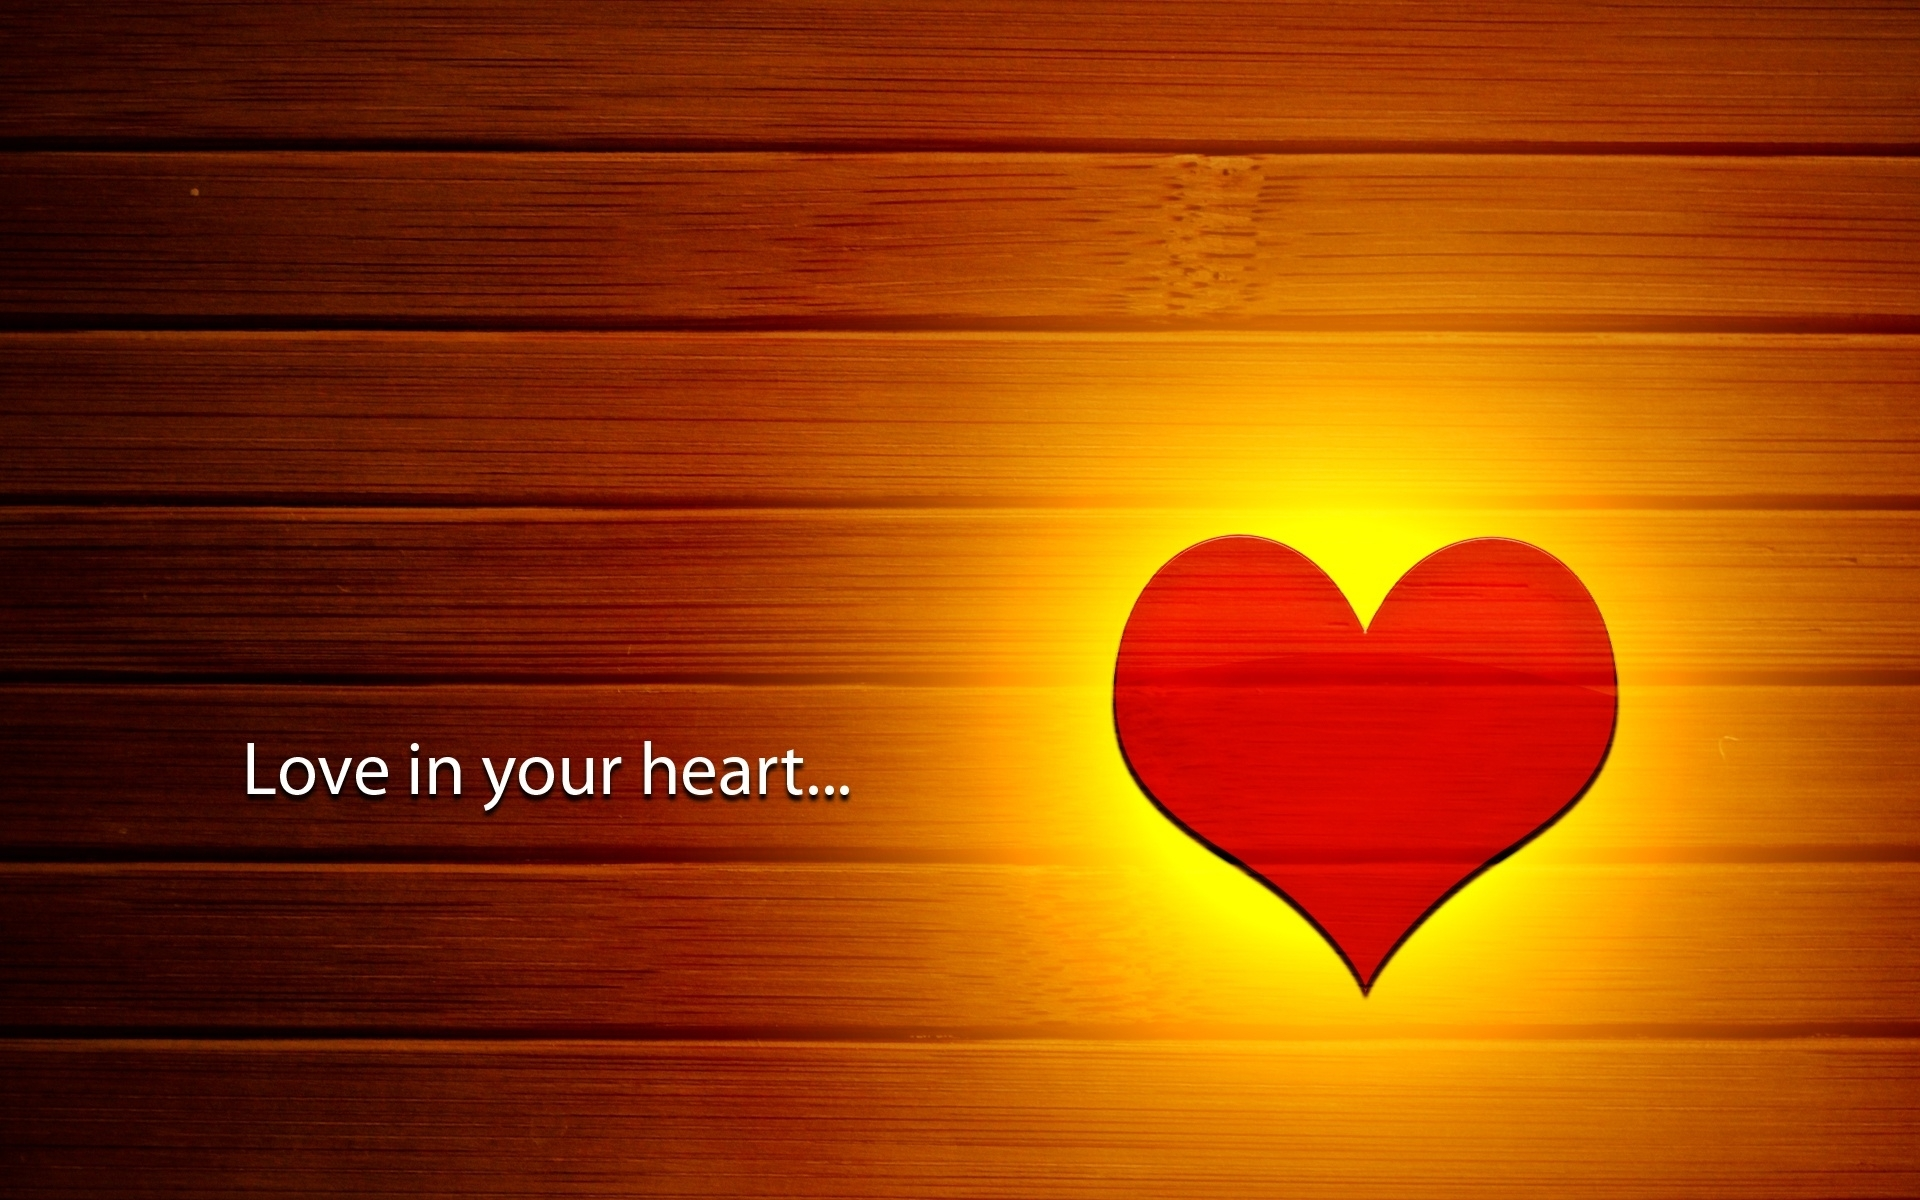 Love Wallpapers Top : Love Backgrounds wallpaper 1920x1200 #69672